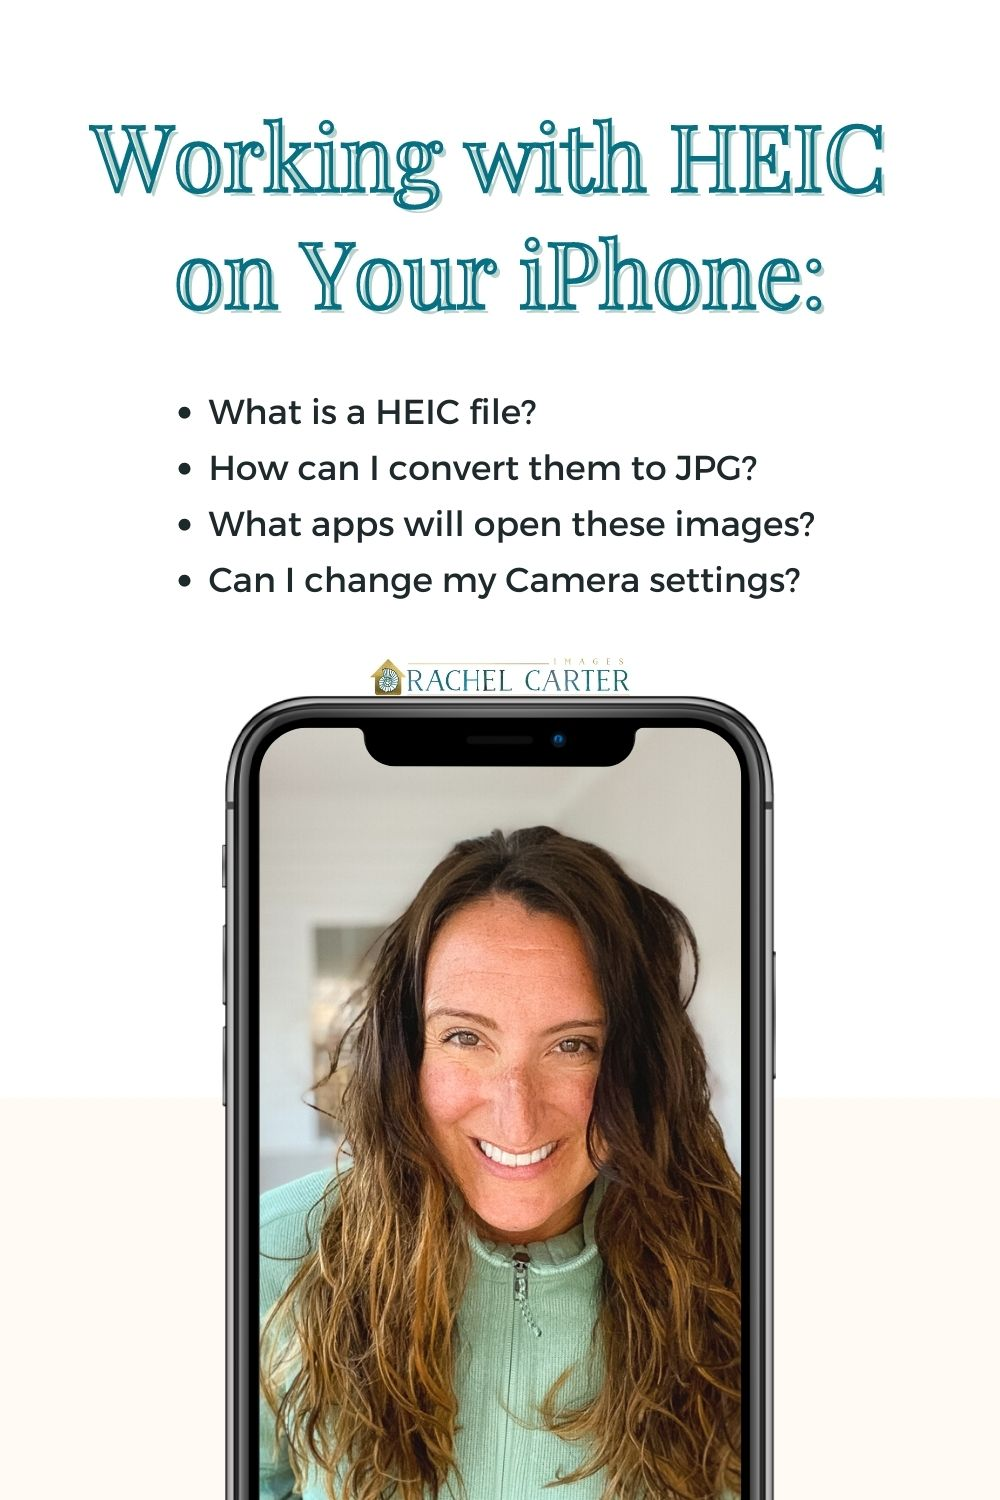 Working With HEIC on Your iPhone - Rachel Carter Images